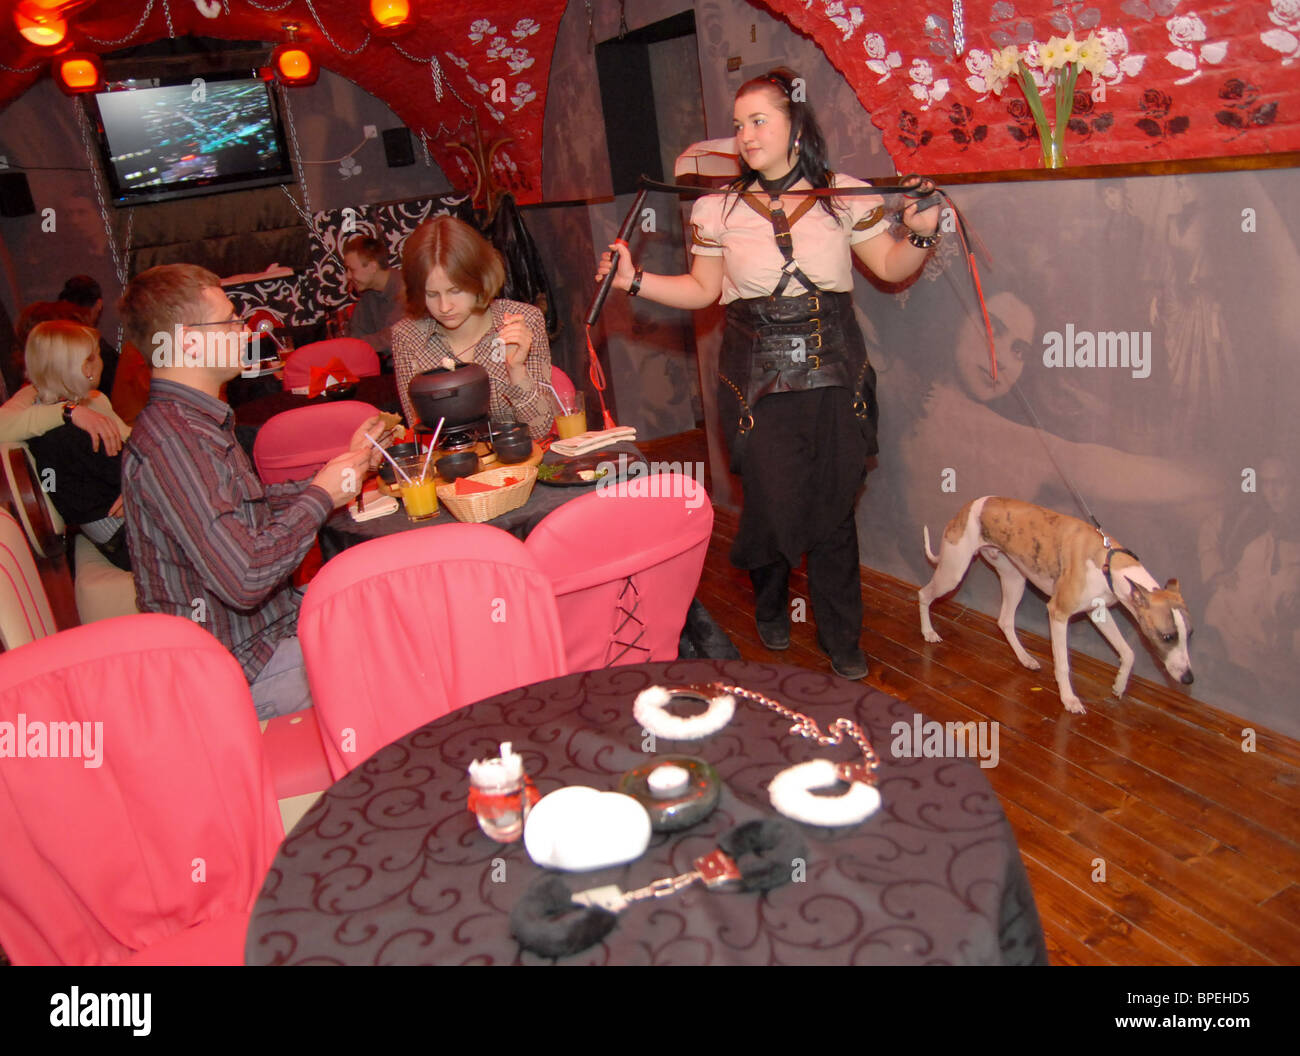 Masoch Cafe appears in Lviv, Ukraine - Stock Image